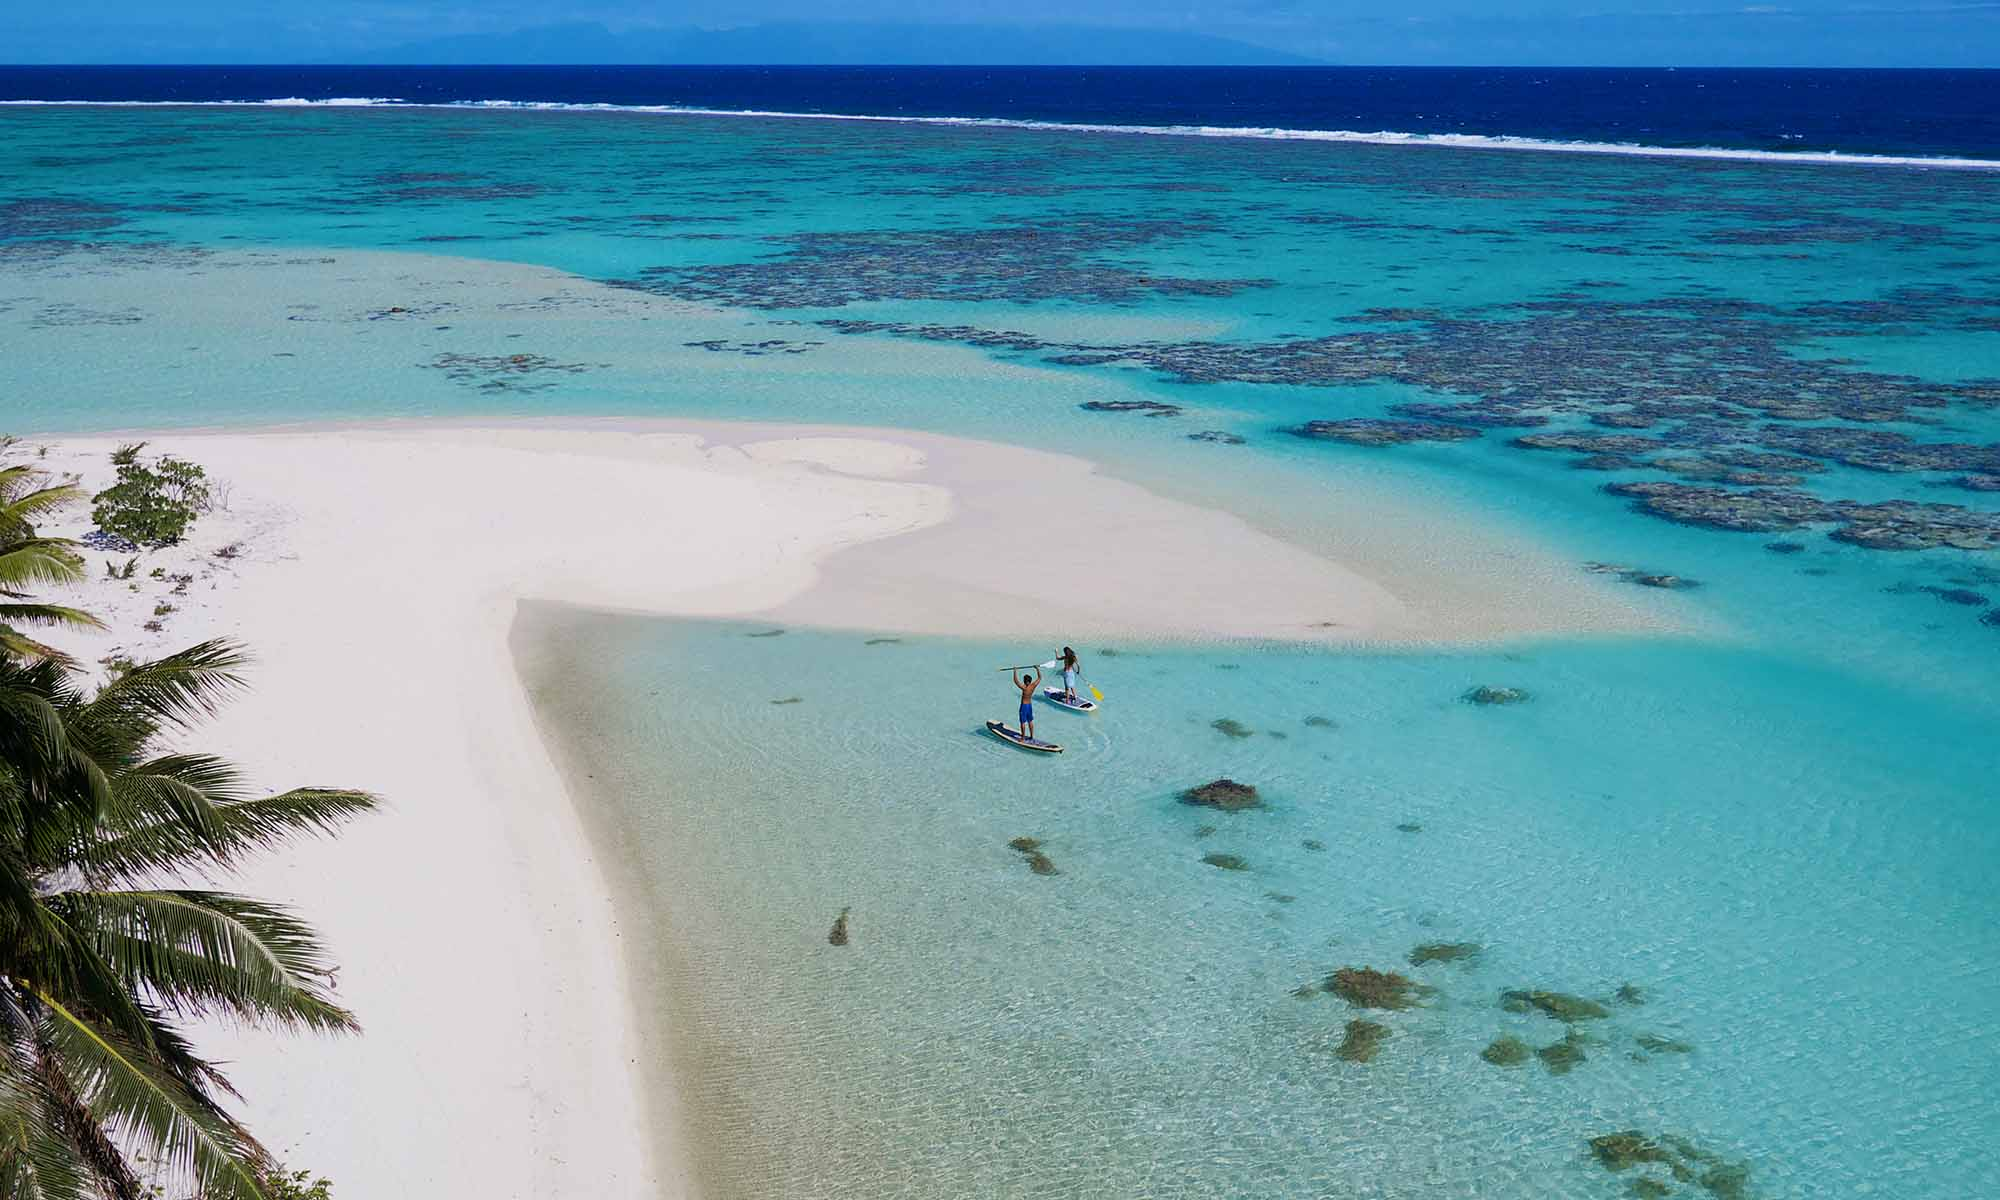 Paddleboarding on Tetiaroa